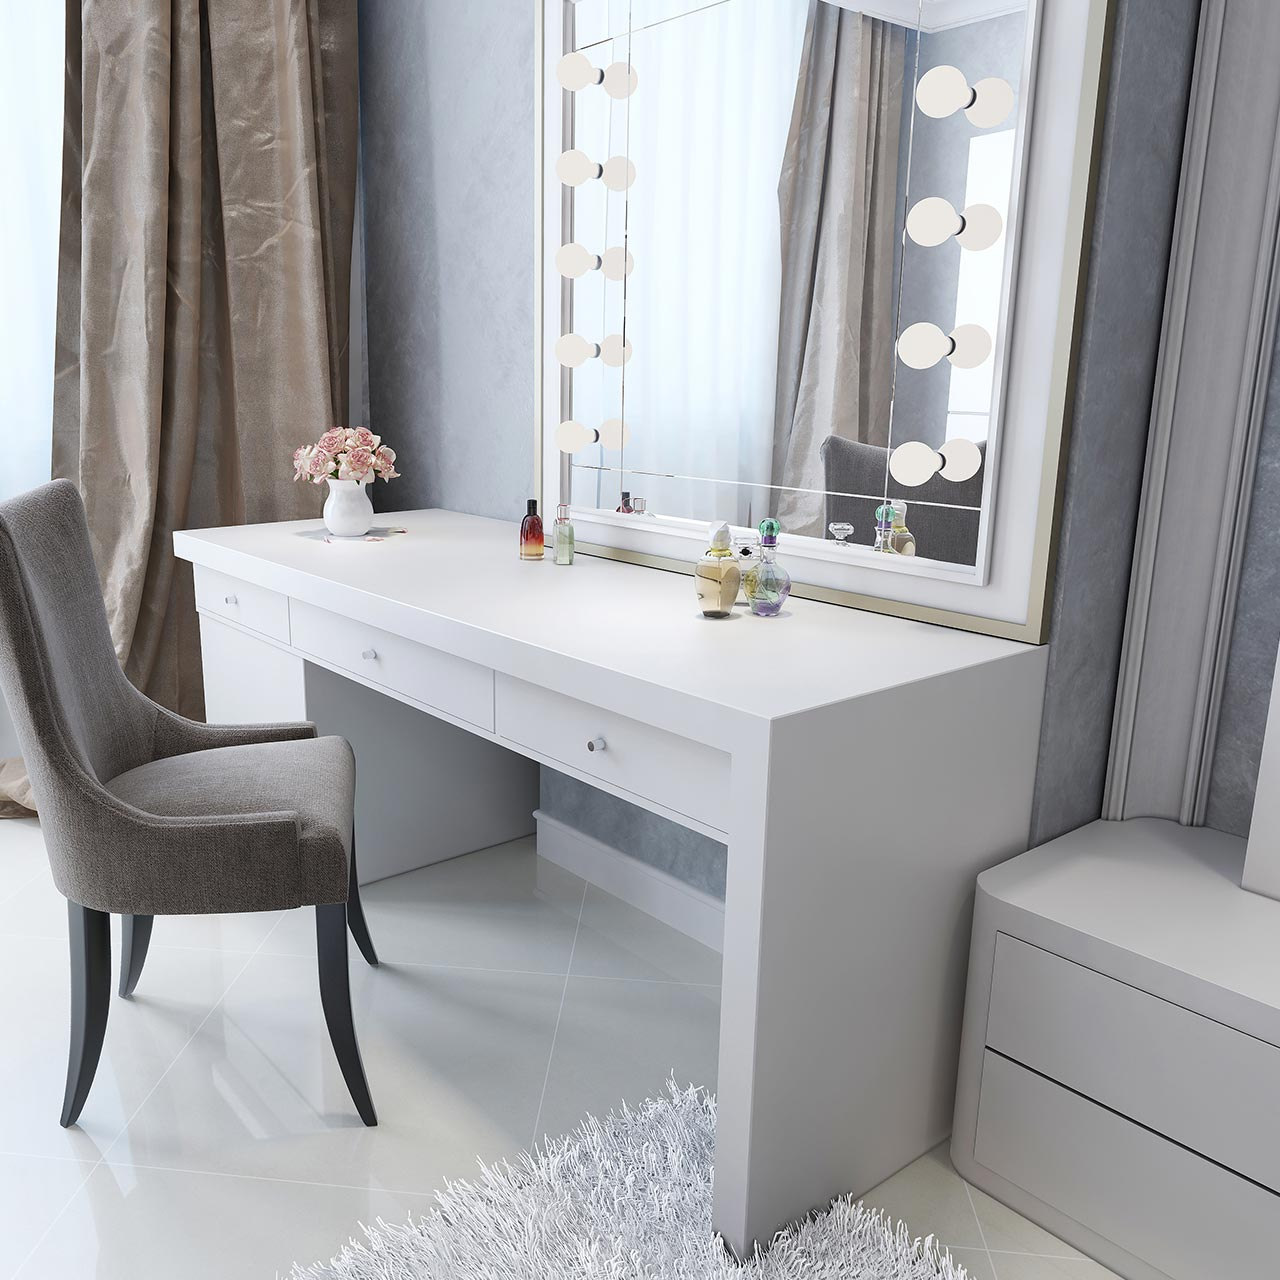 Bedroom interior design furniture with hollywood style white dressing table with lights around the mirror